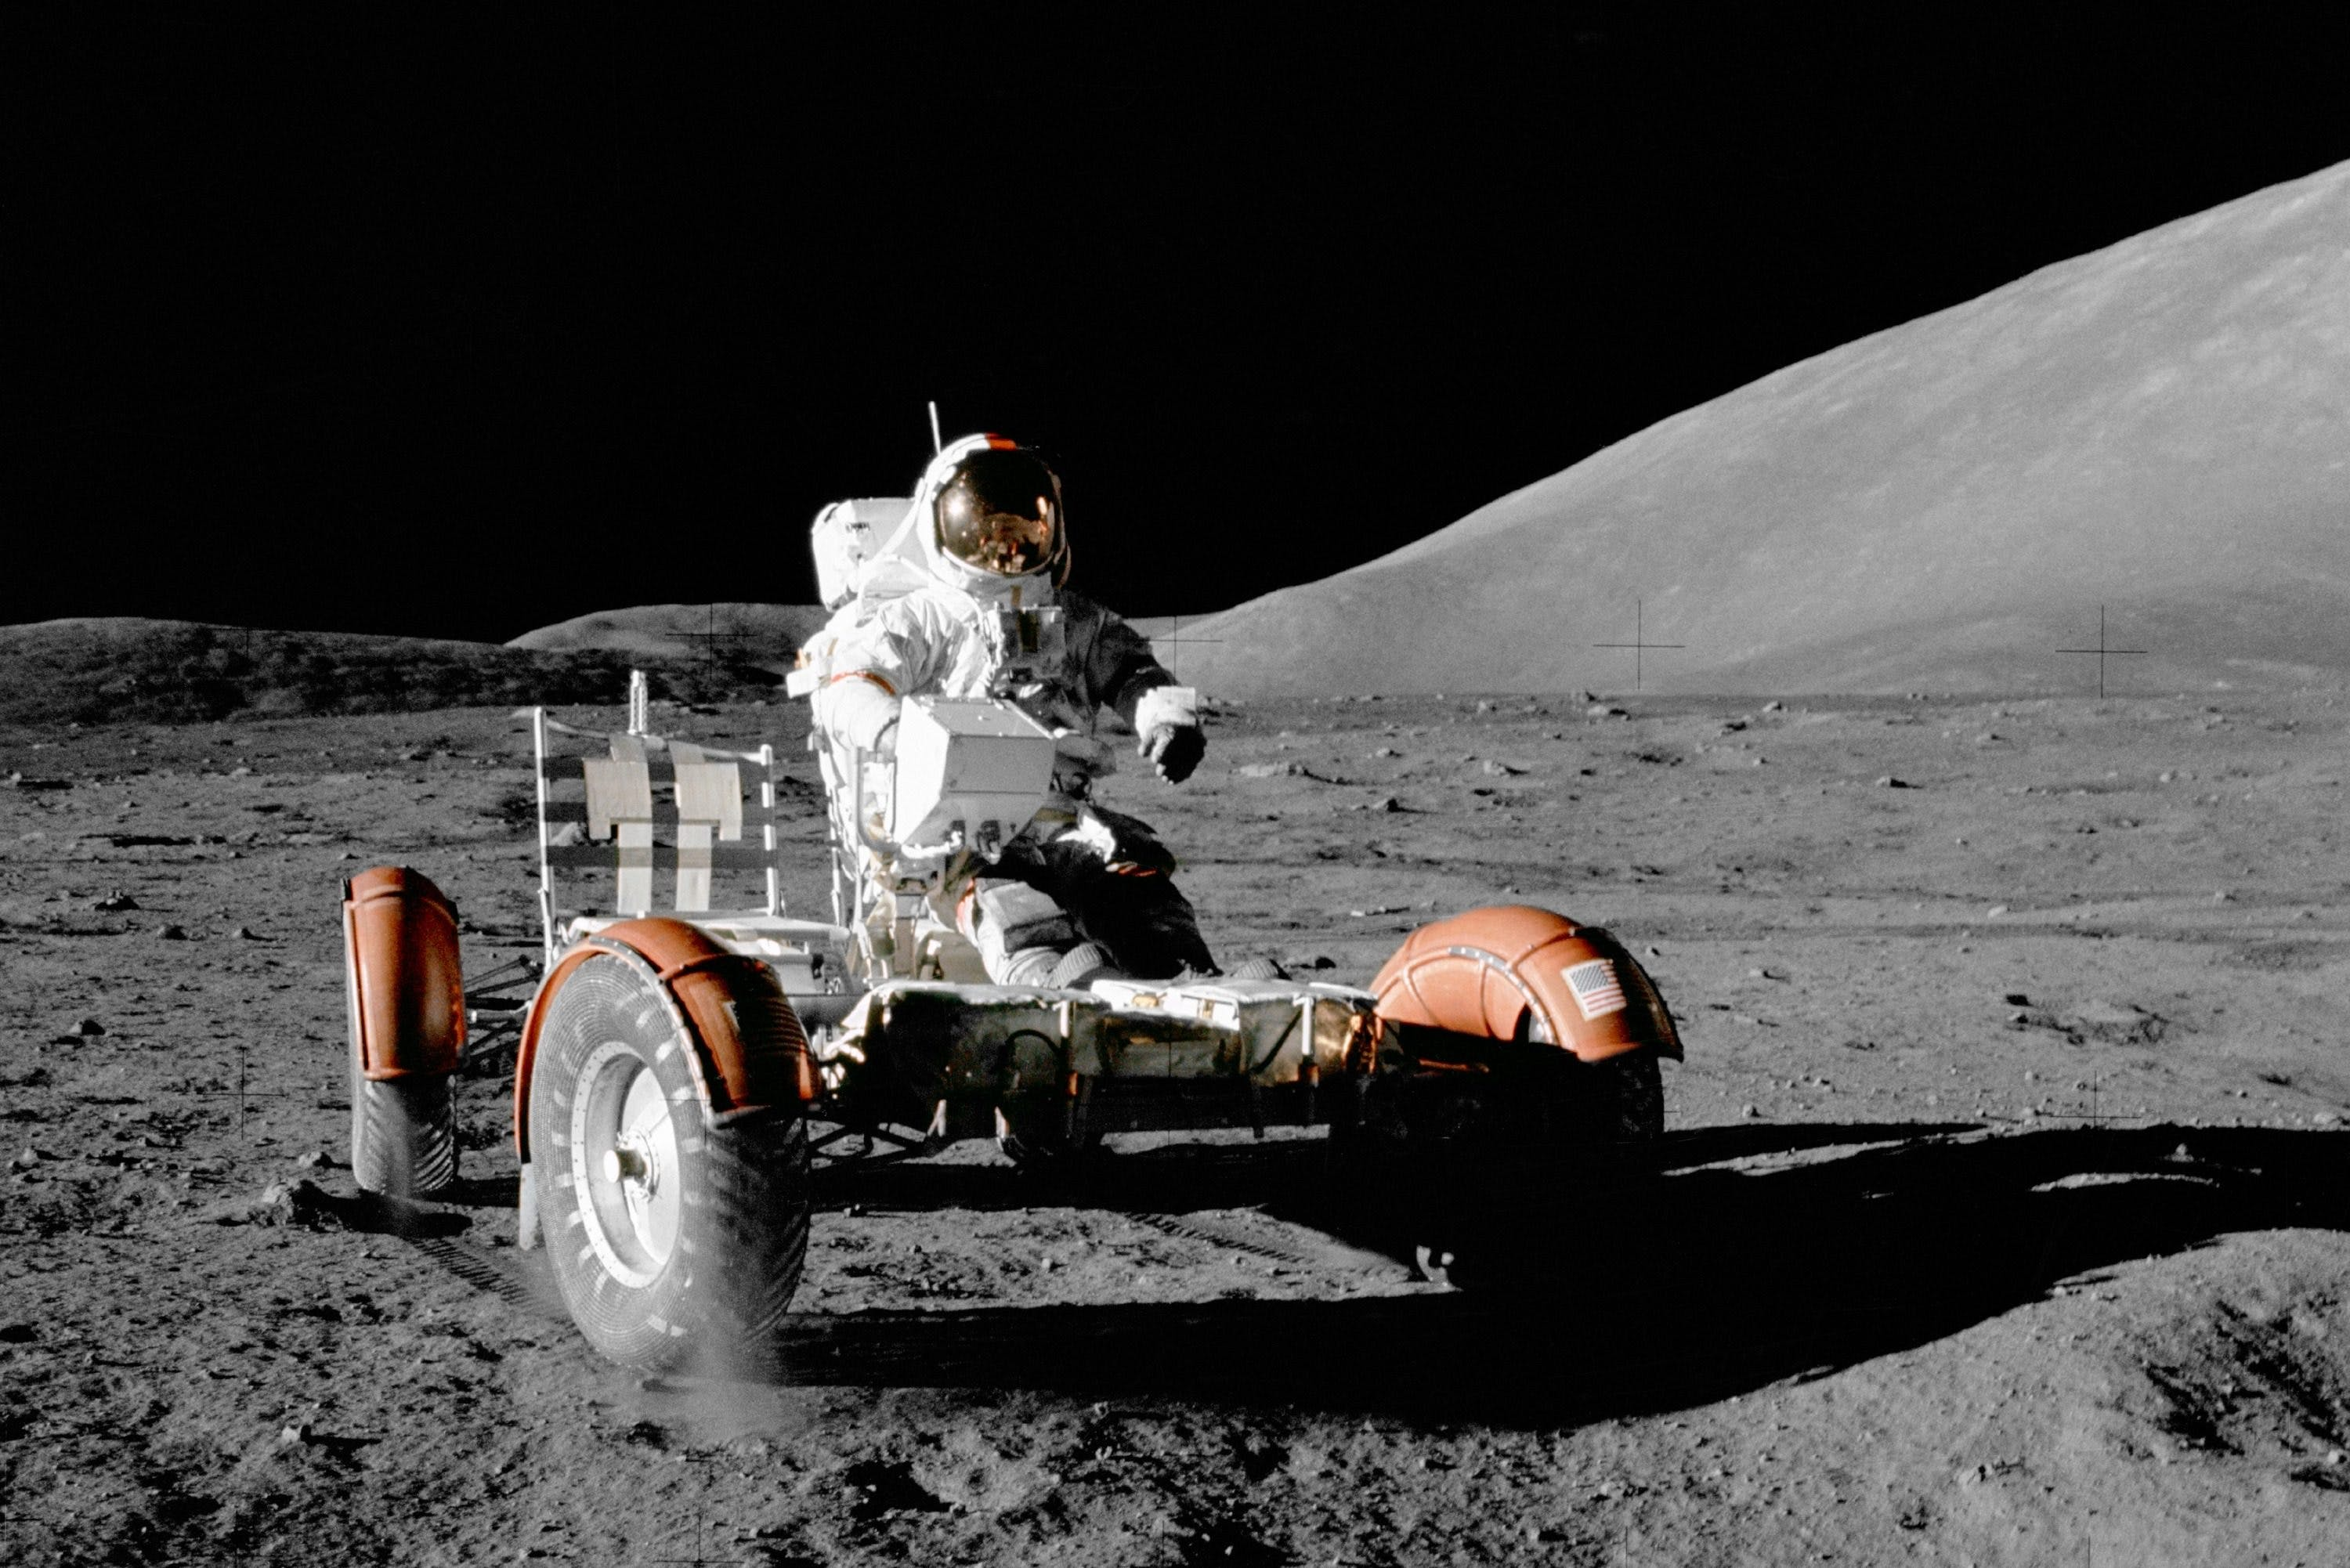 Cernan on mooncar